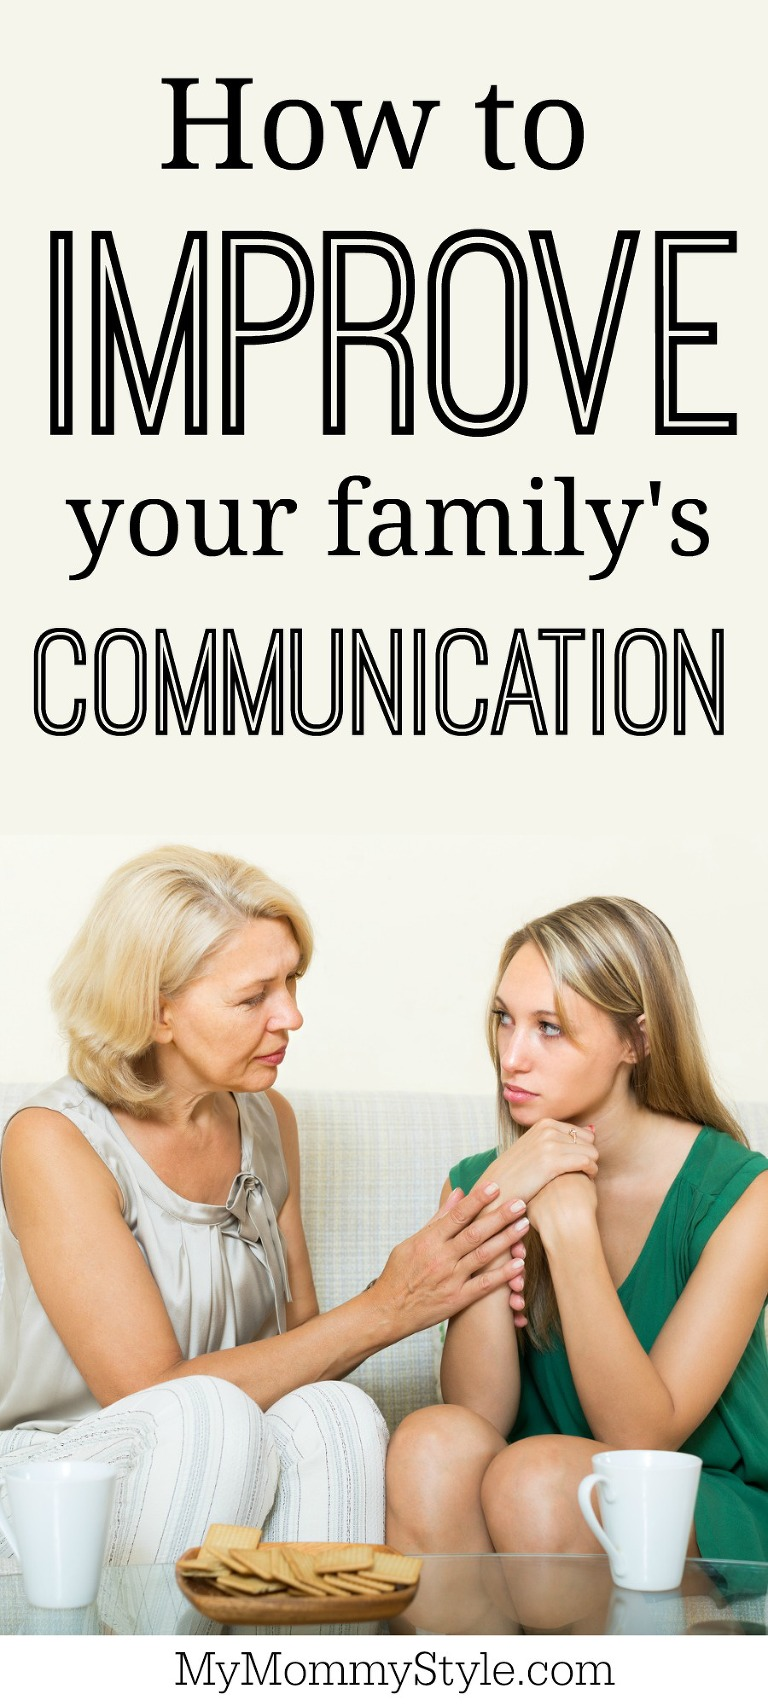 how to improve your family's communication